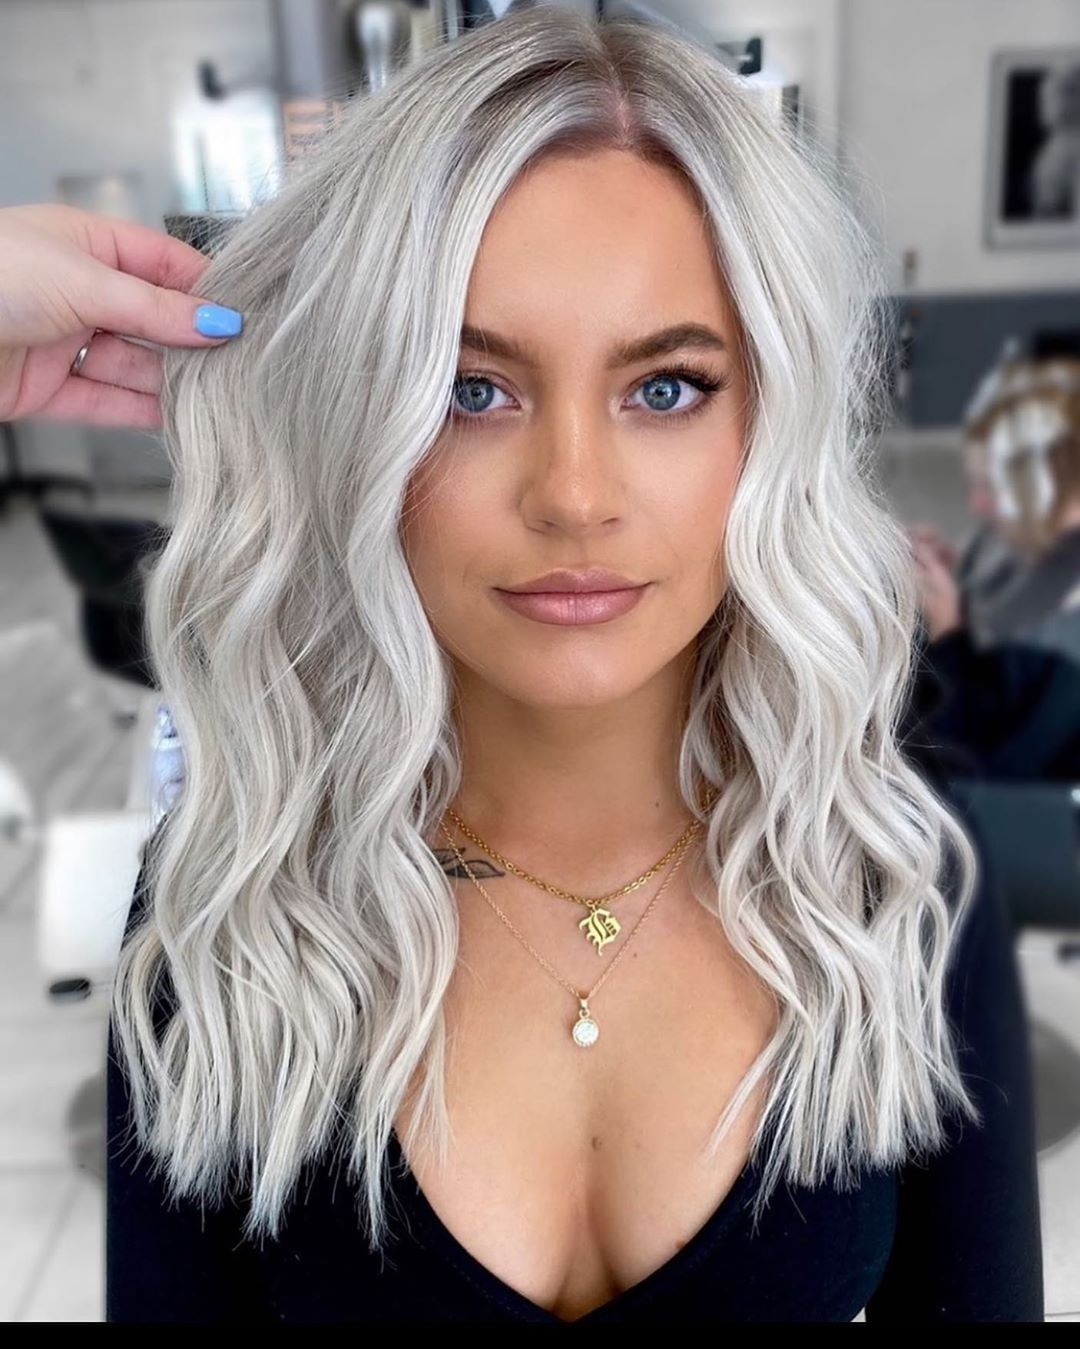 50 Best Hairstyle Ideas Royal Follow In 2020 Silver Blonde Hair Hair Styles Icy Blonde Hair